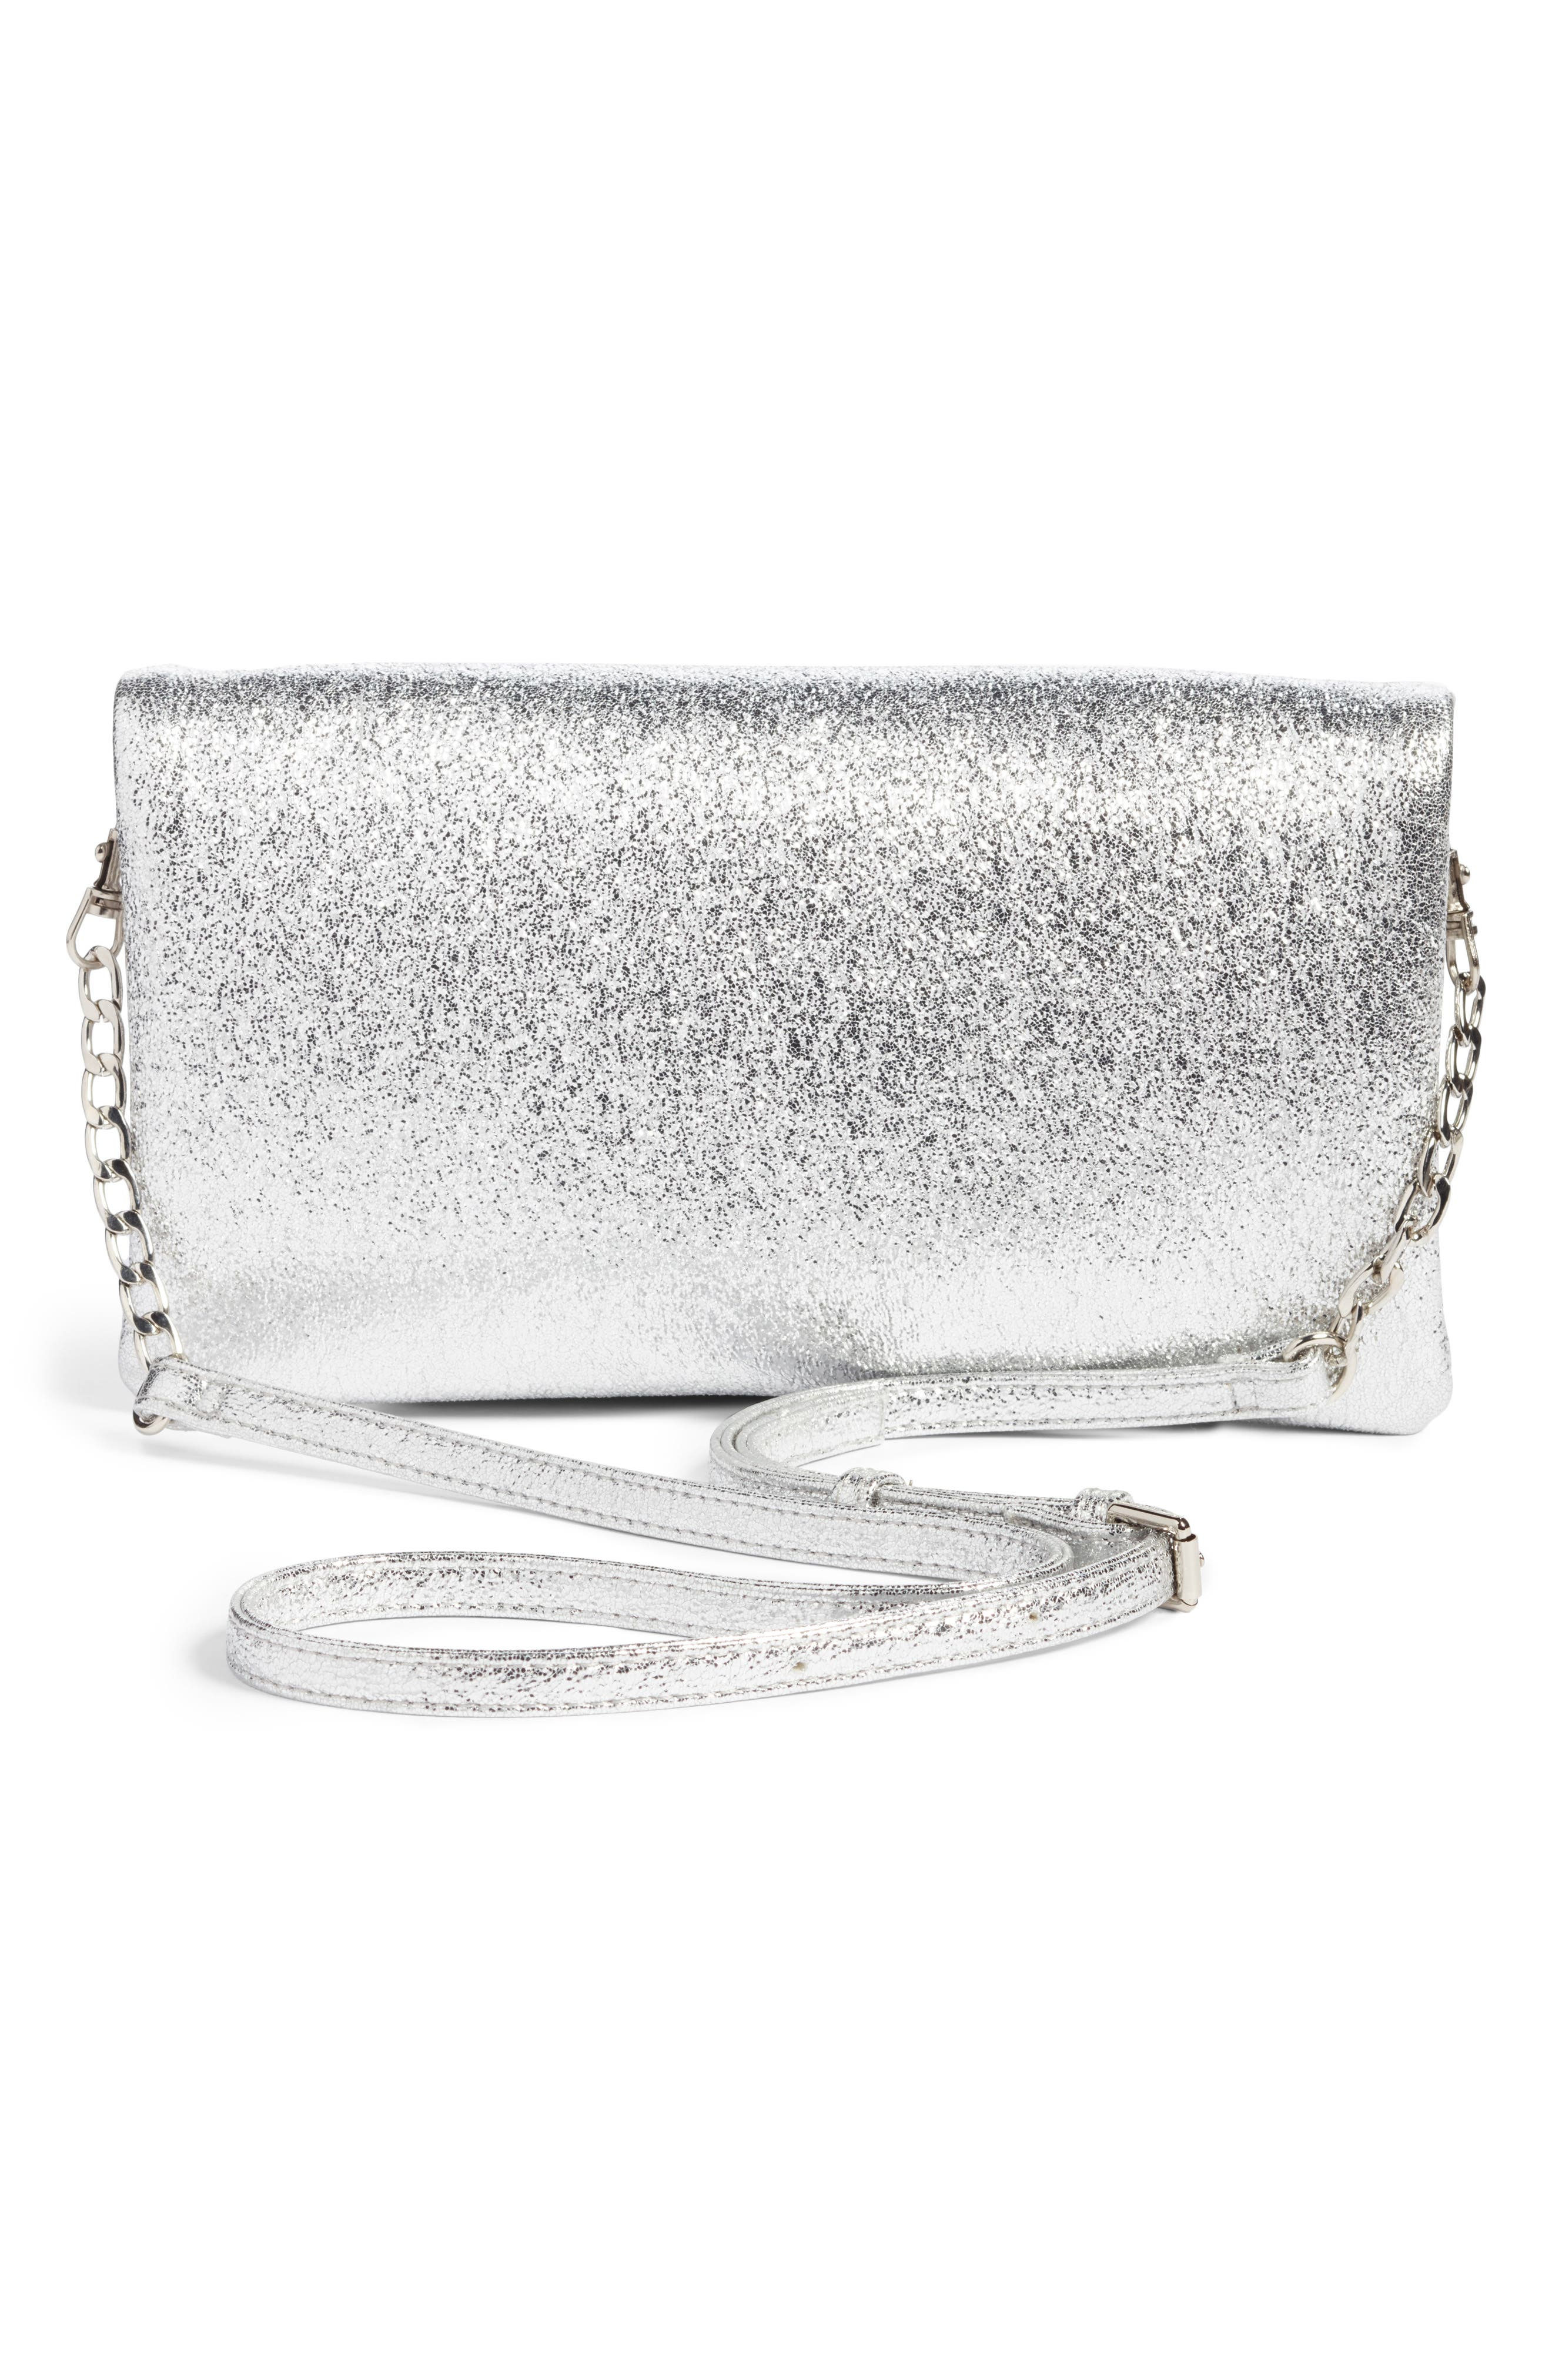 Maci Crinkle Faux Leather Foldover Clutch,                             Alternate thumbnail 3, color,                             040